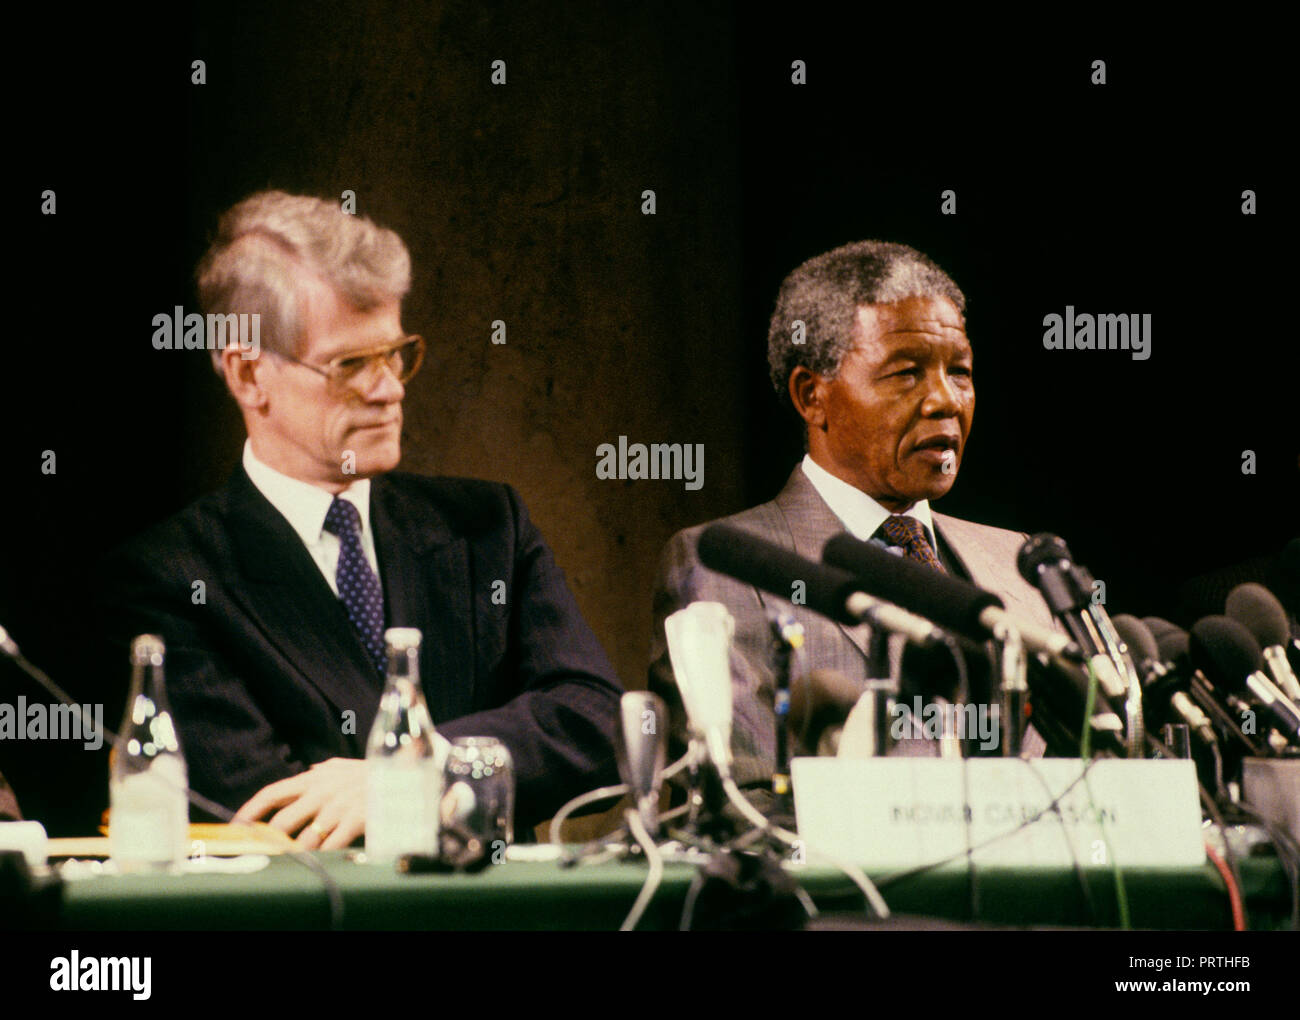 NELSON MANDELA ANC and South Africa leader in Stockholm for meeting with Swedish leader Ingvar Carlsson 1990 - Stock Image